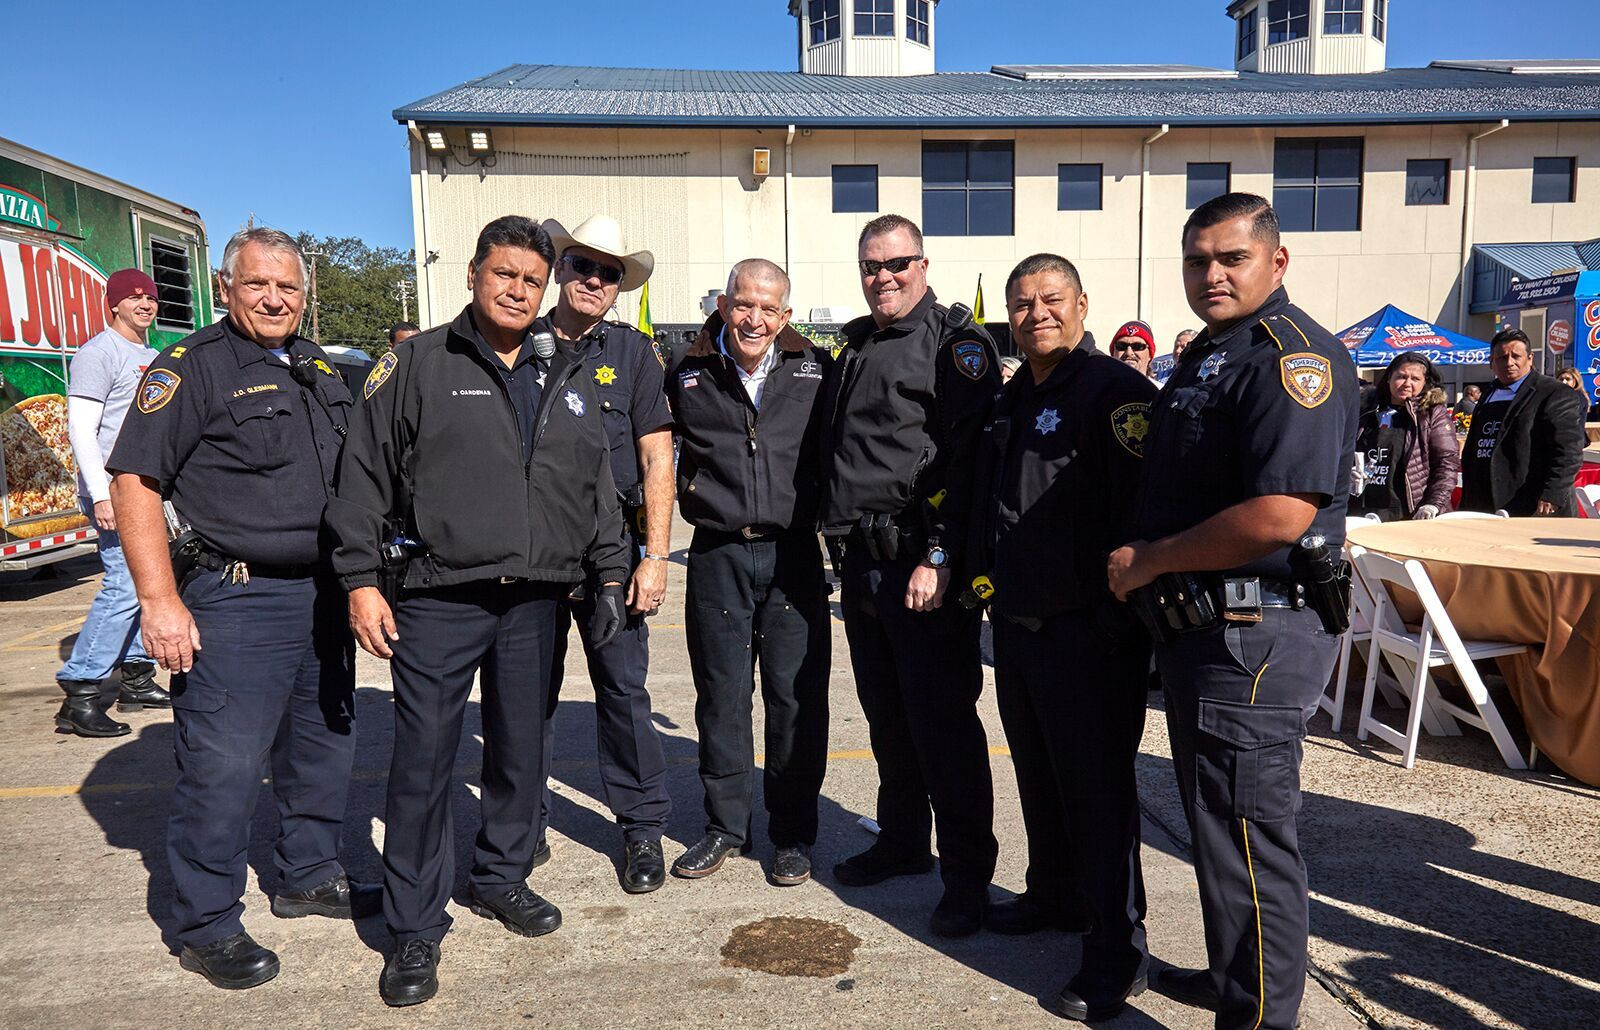 Many thanks to the Harris County Sheriff's Department